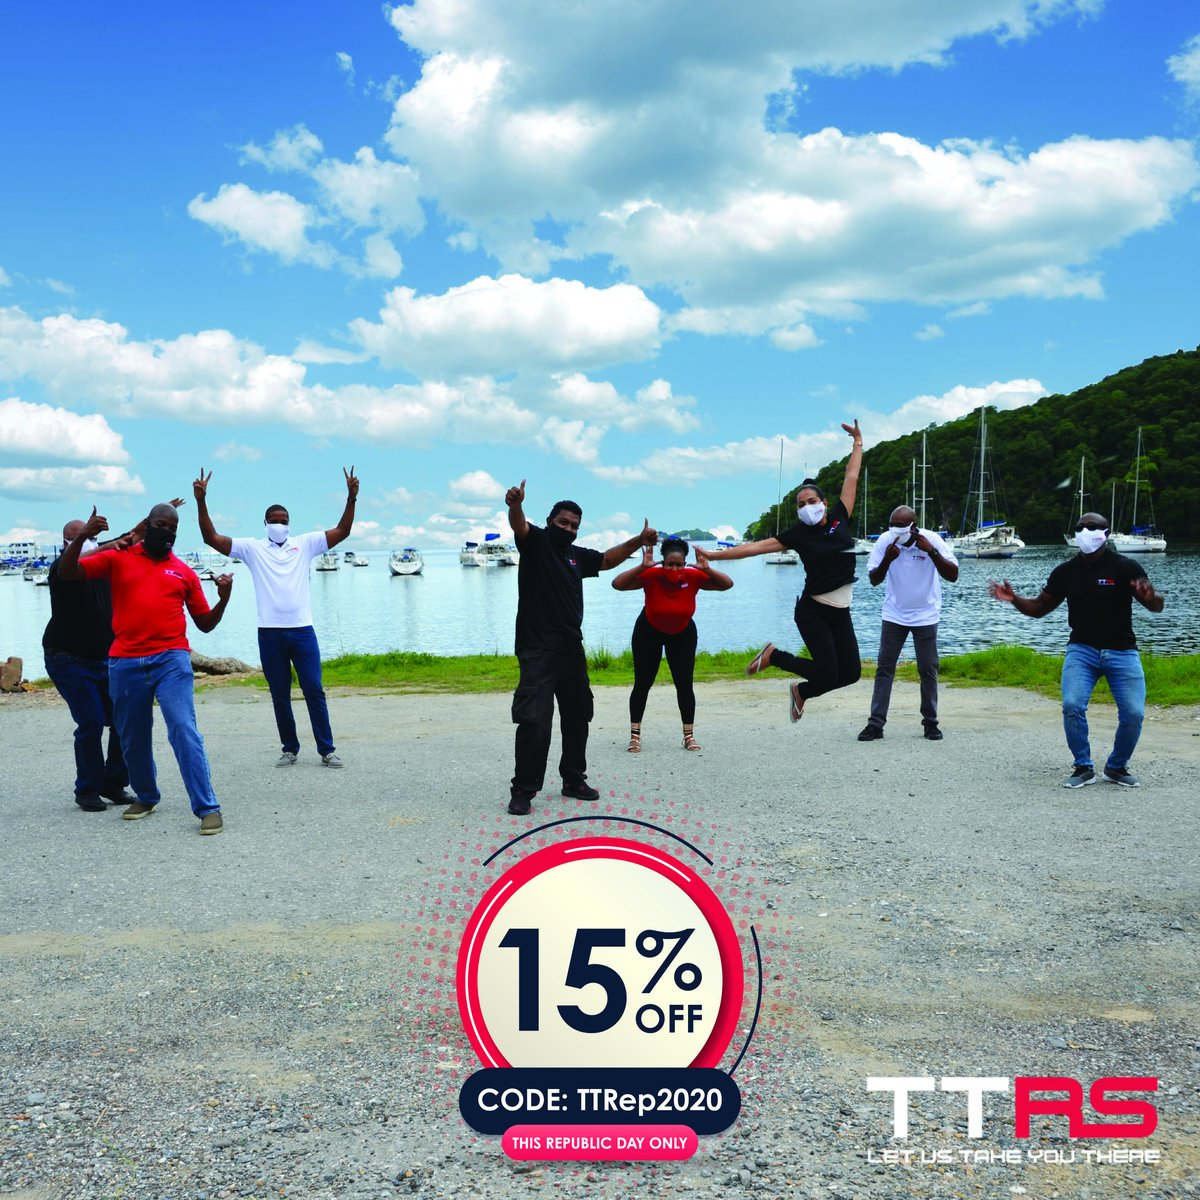 🇹🇹 This Republic Day, TTRS will be offering Riders 15% off your rides with us! Simply apply the code TTRep2020. Offer valid September 24th, 2020 only. #ttrideshare #ttrs #letustakeyouthere #transportation #happyrepublicday #republicday #trinidadandtobago https://t.co/EyxbyDDwYY